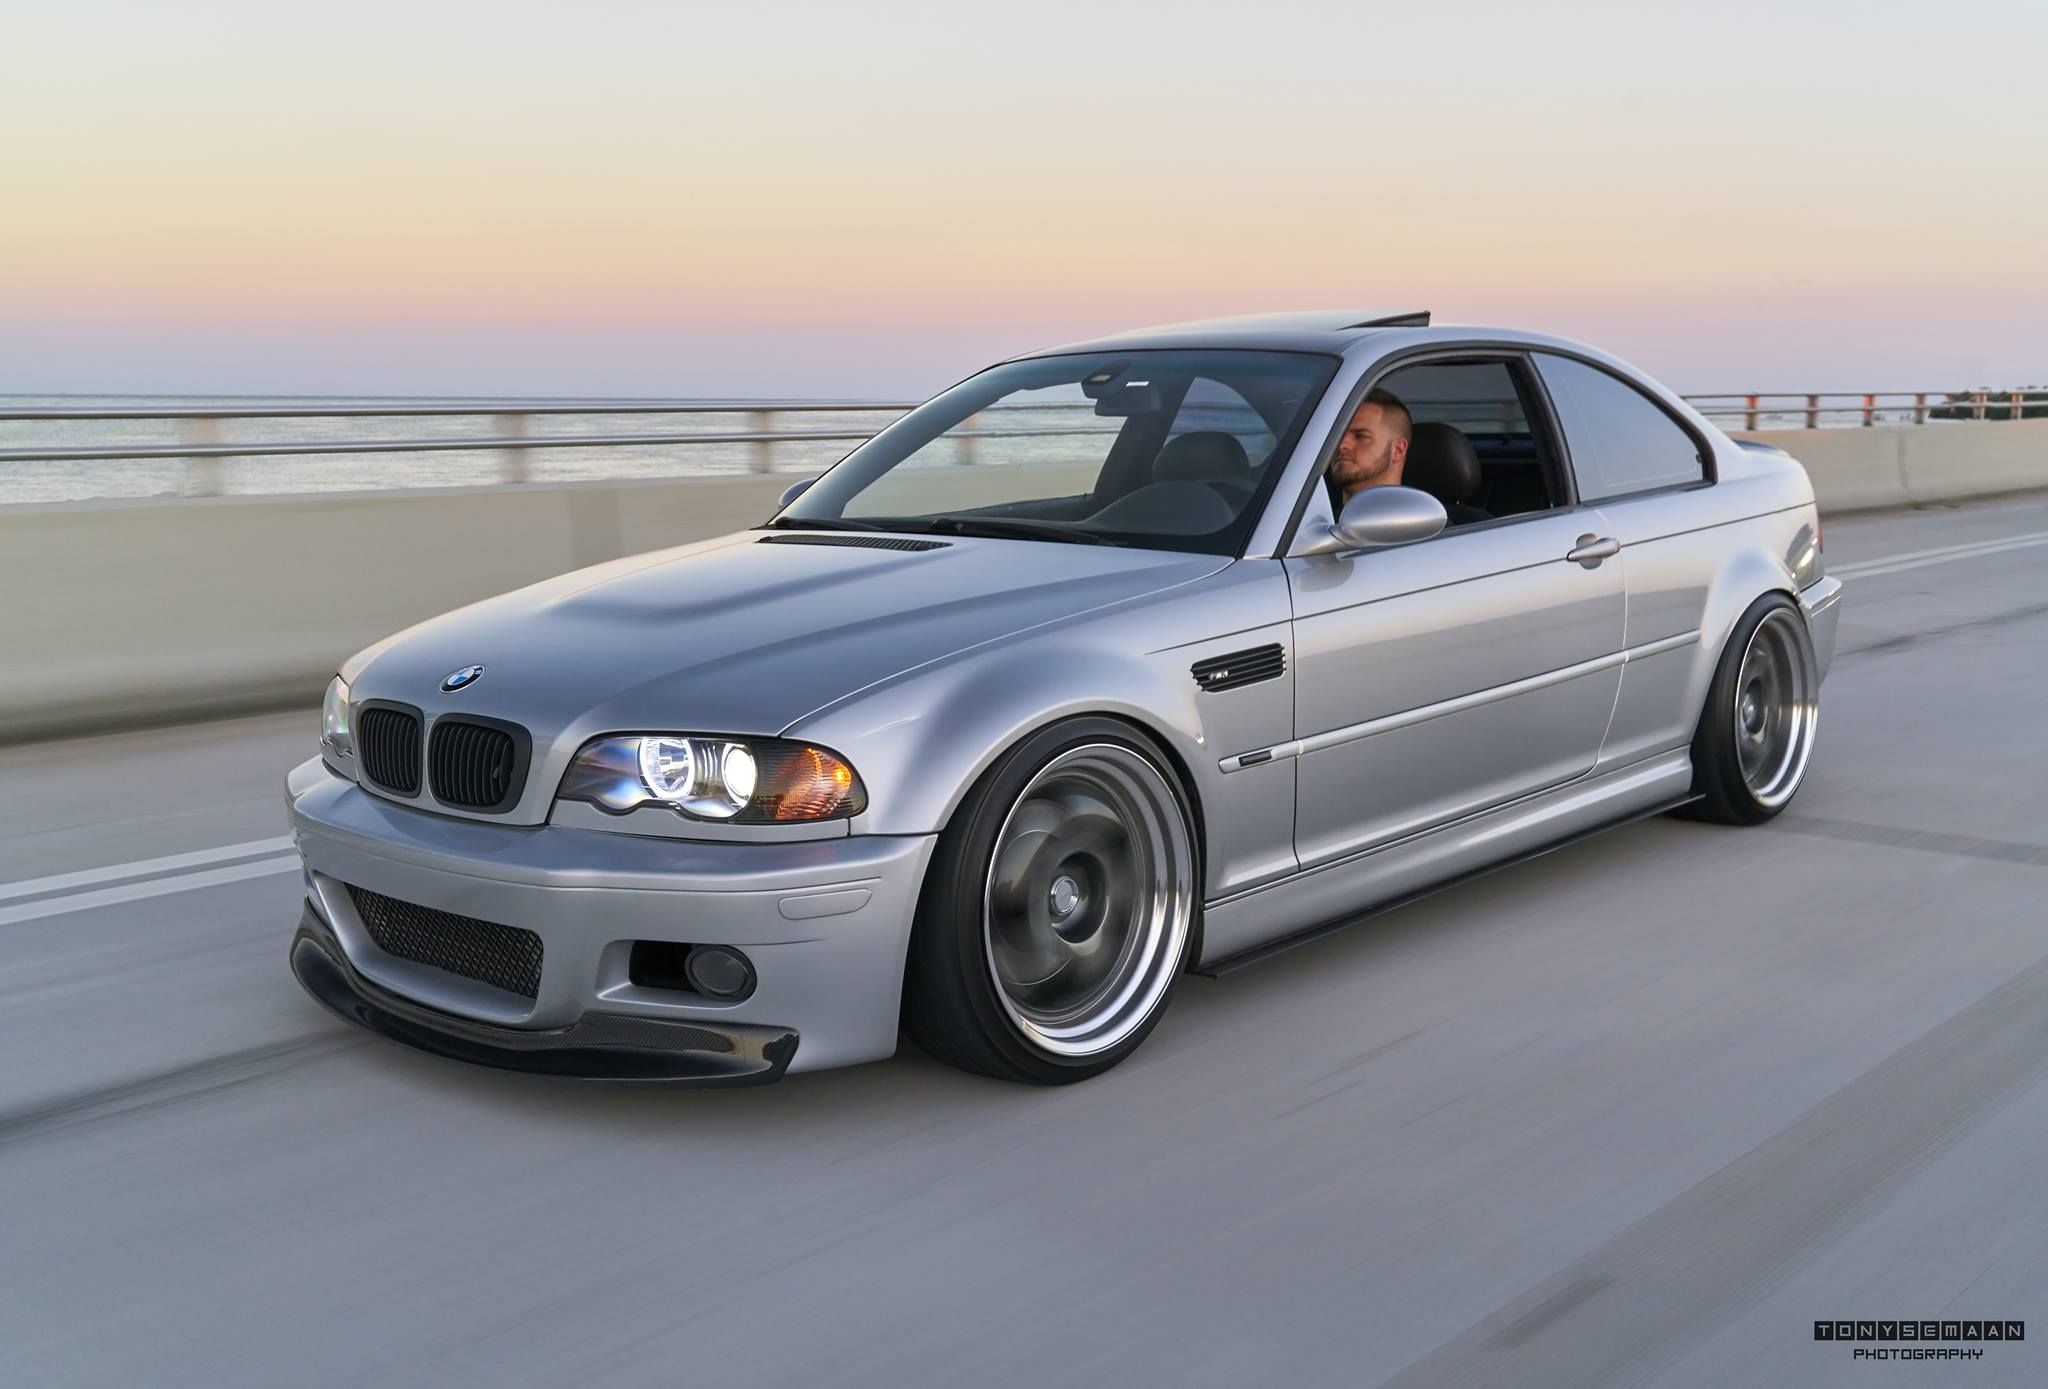 Bmw e46 m3 coupe mperformance sheerdrivingpeasure for Garage bmw nice